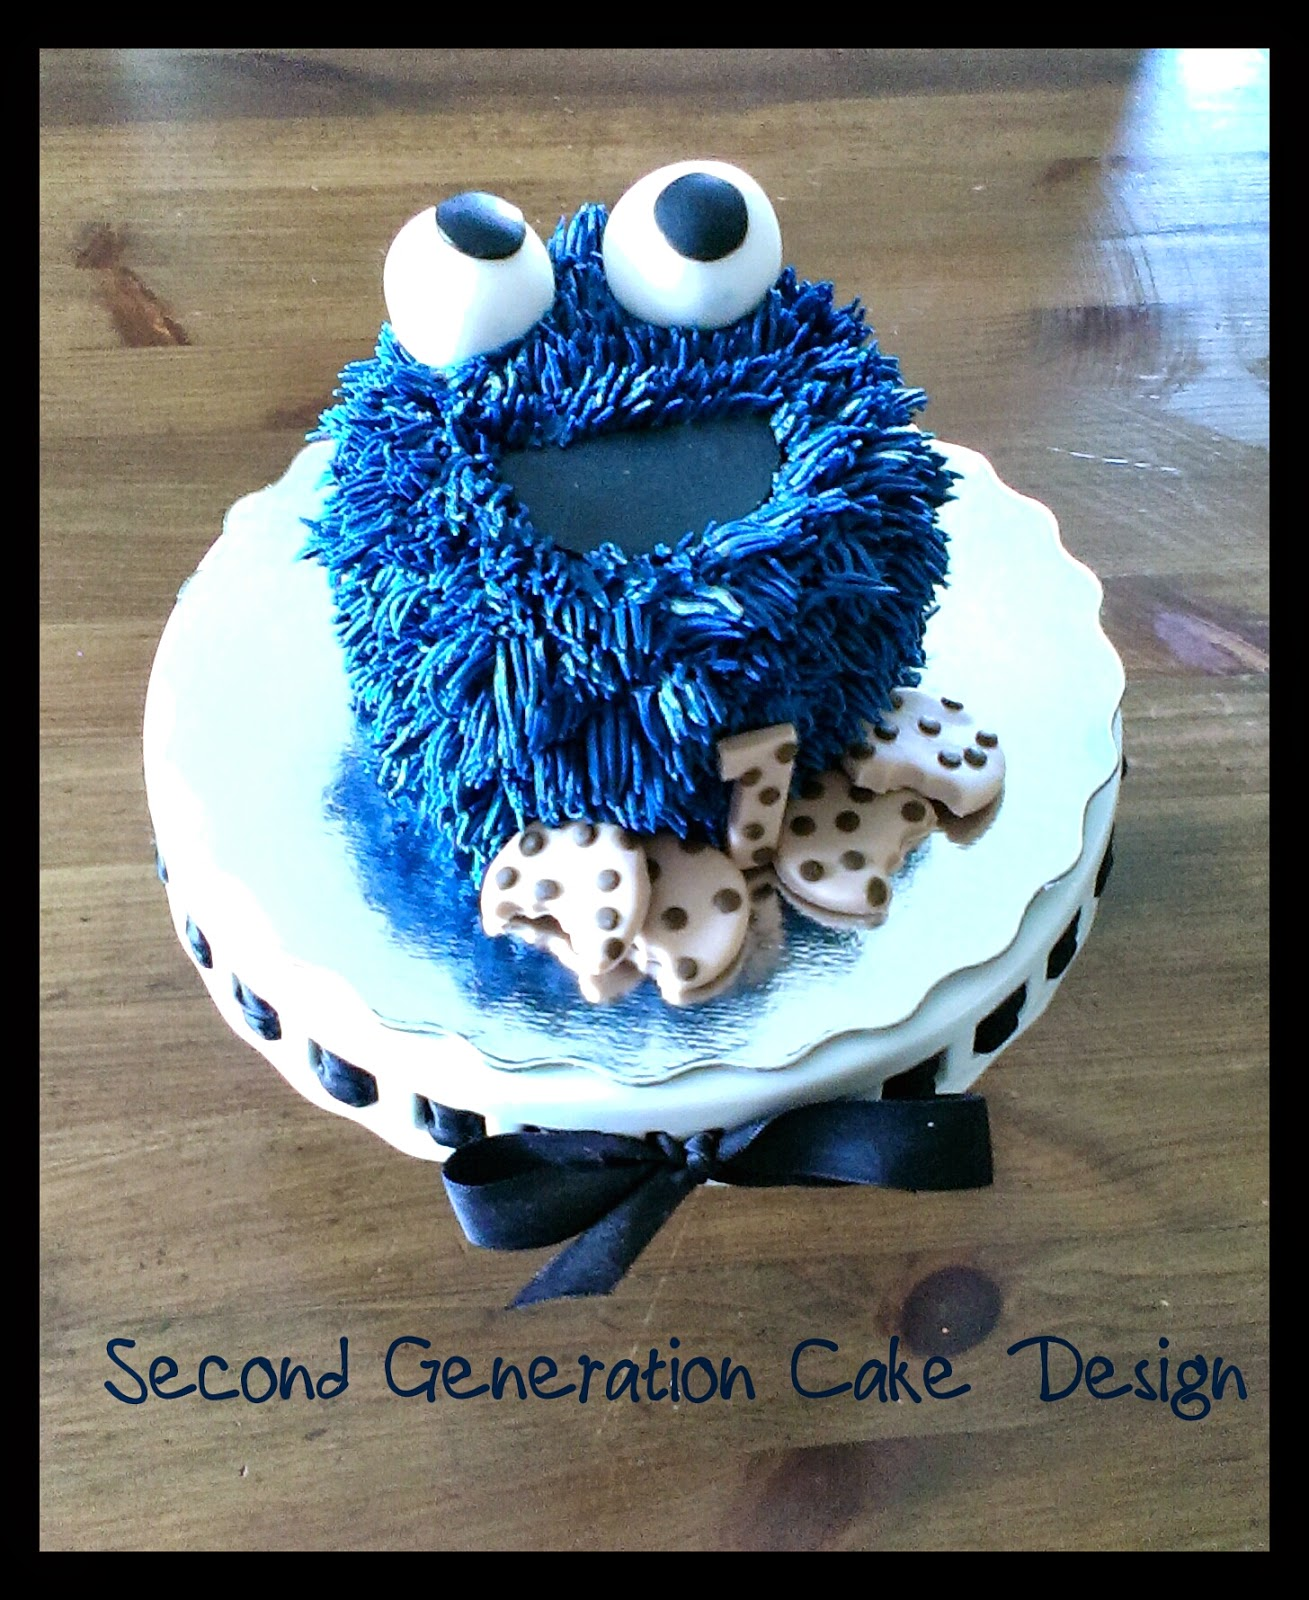 Second Generation Cake Design Cookie Monster 1st Birthday Cake